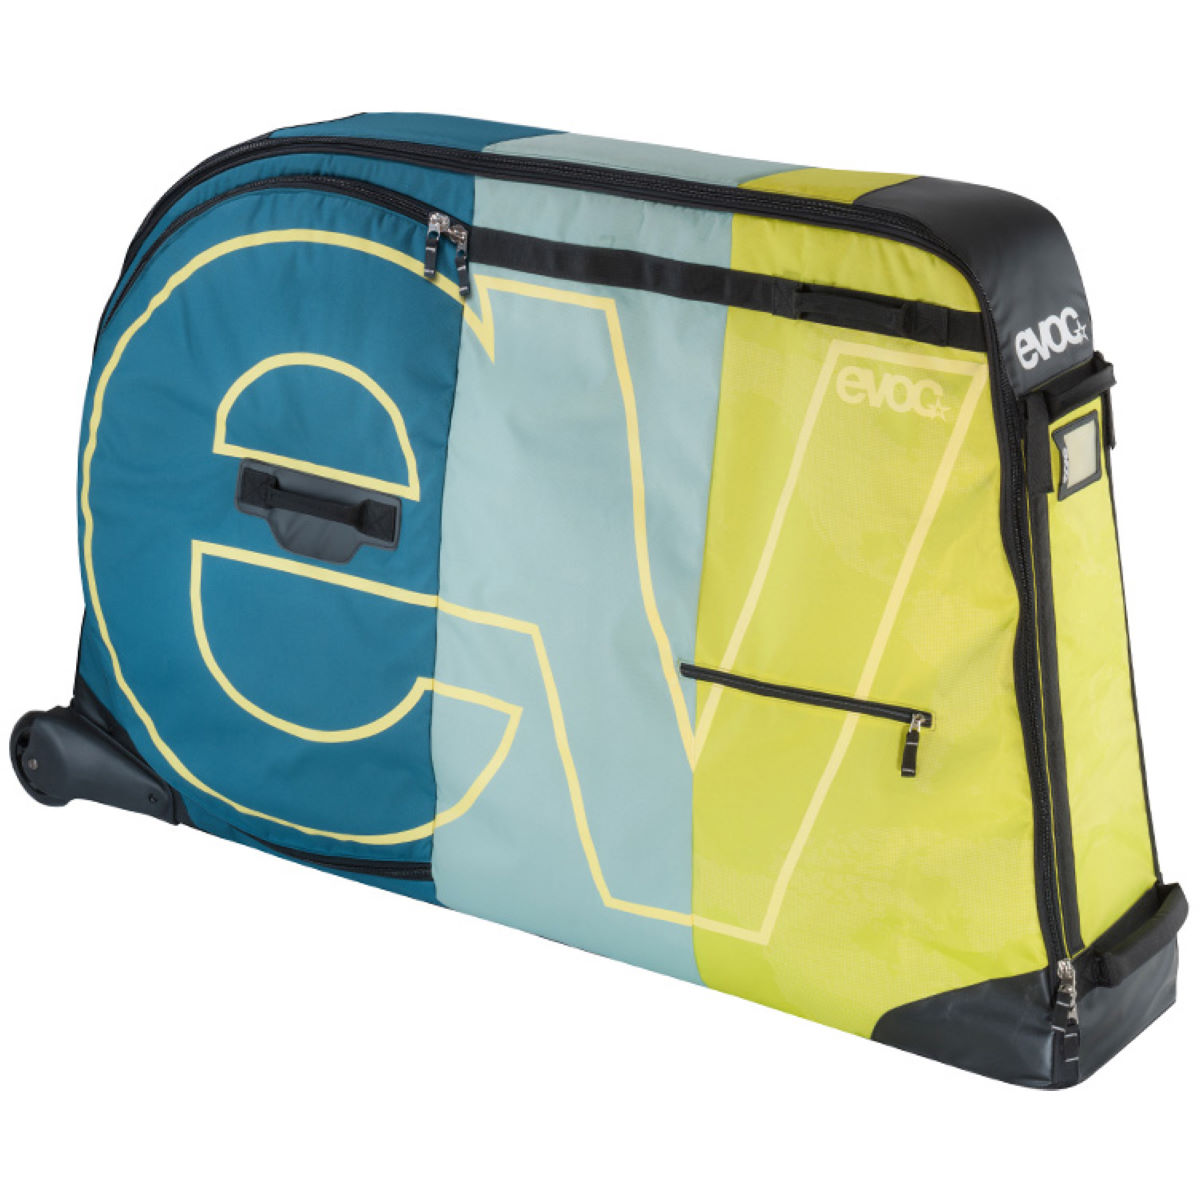 Evoc Bike Travel Bag - 280 Litres